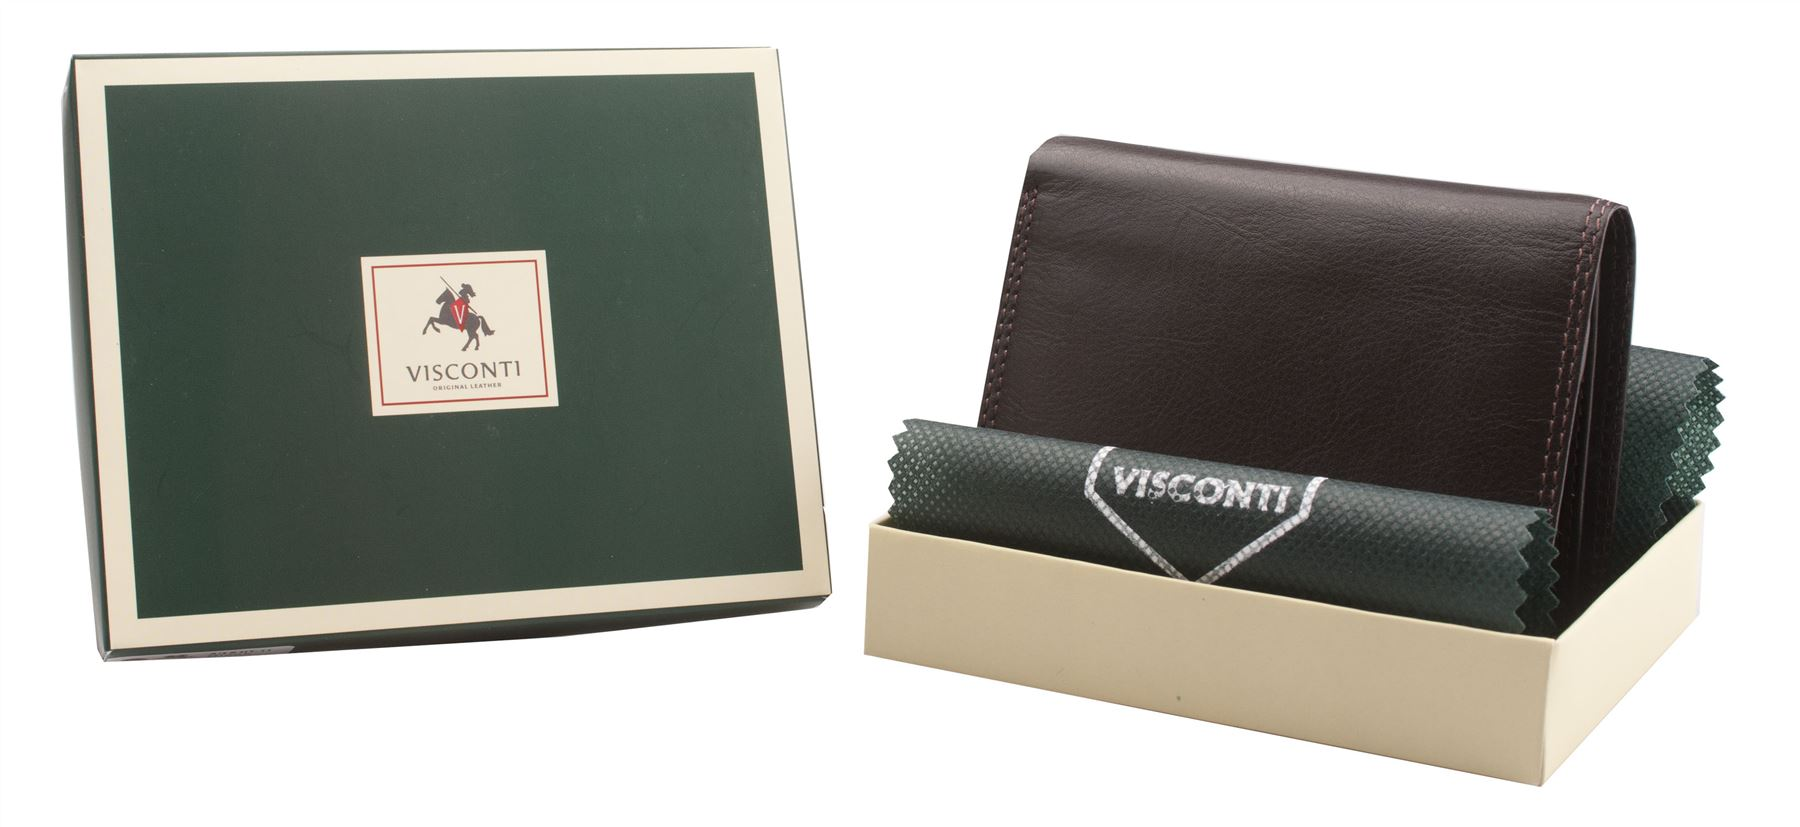 Portefeuille-Visconti-Homme-Cuir-Compartiments-Collection-Heritage-neuf-HT11